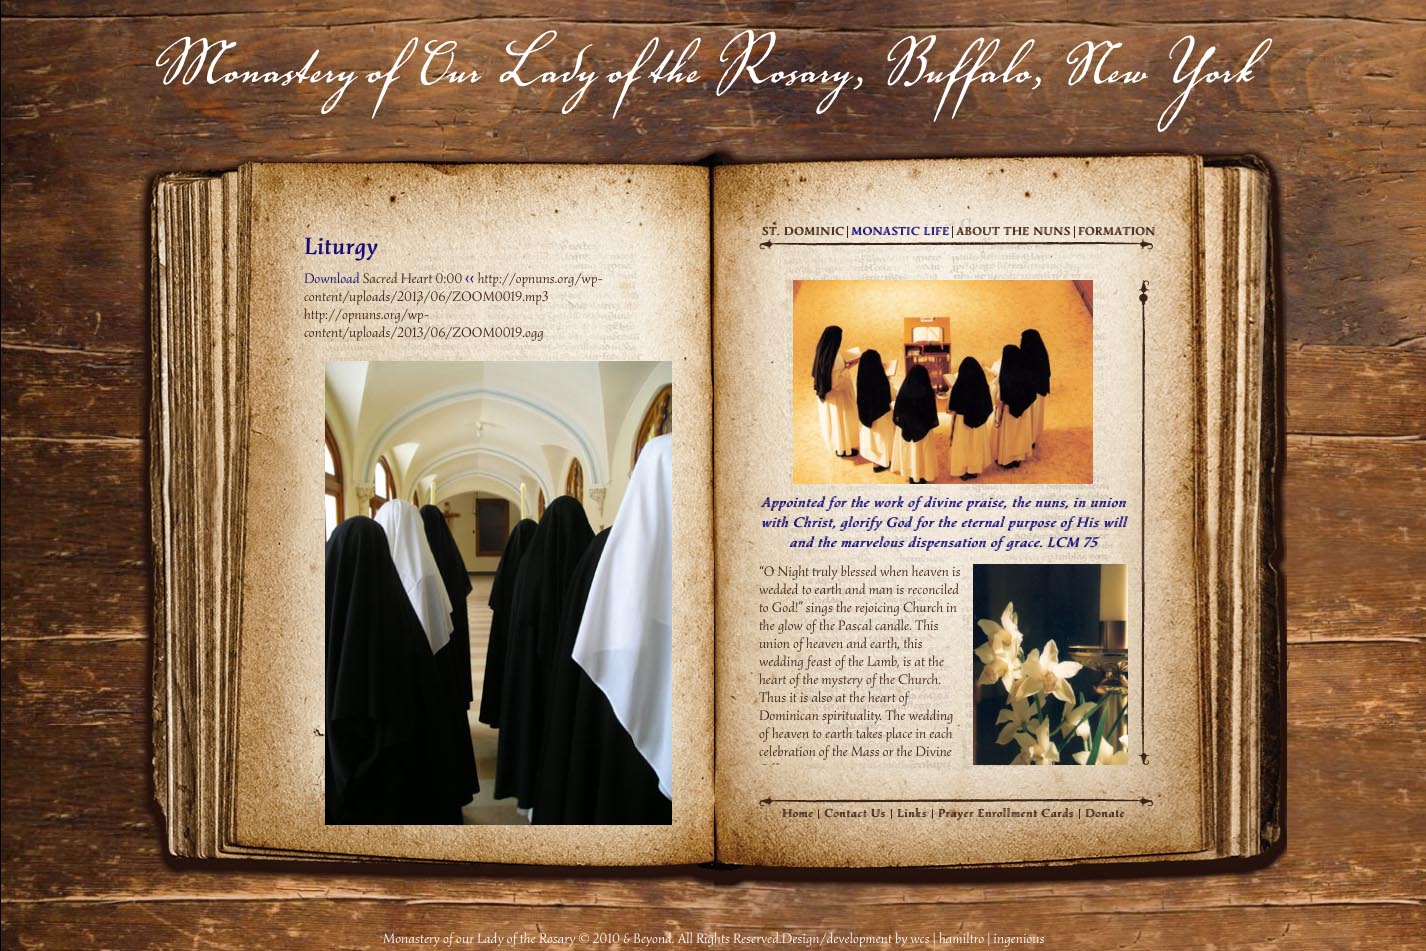 web design for a monastery - liturgy page